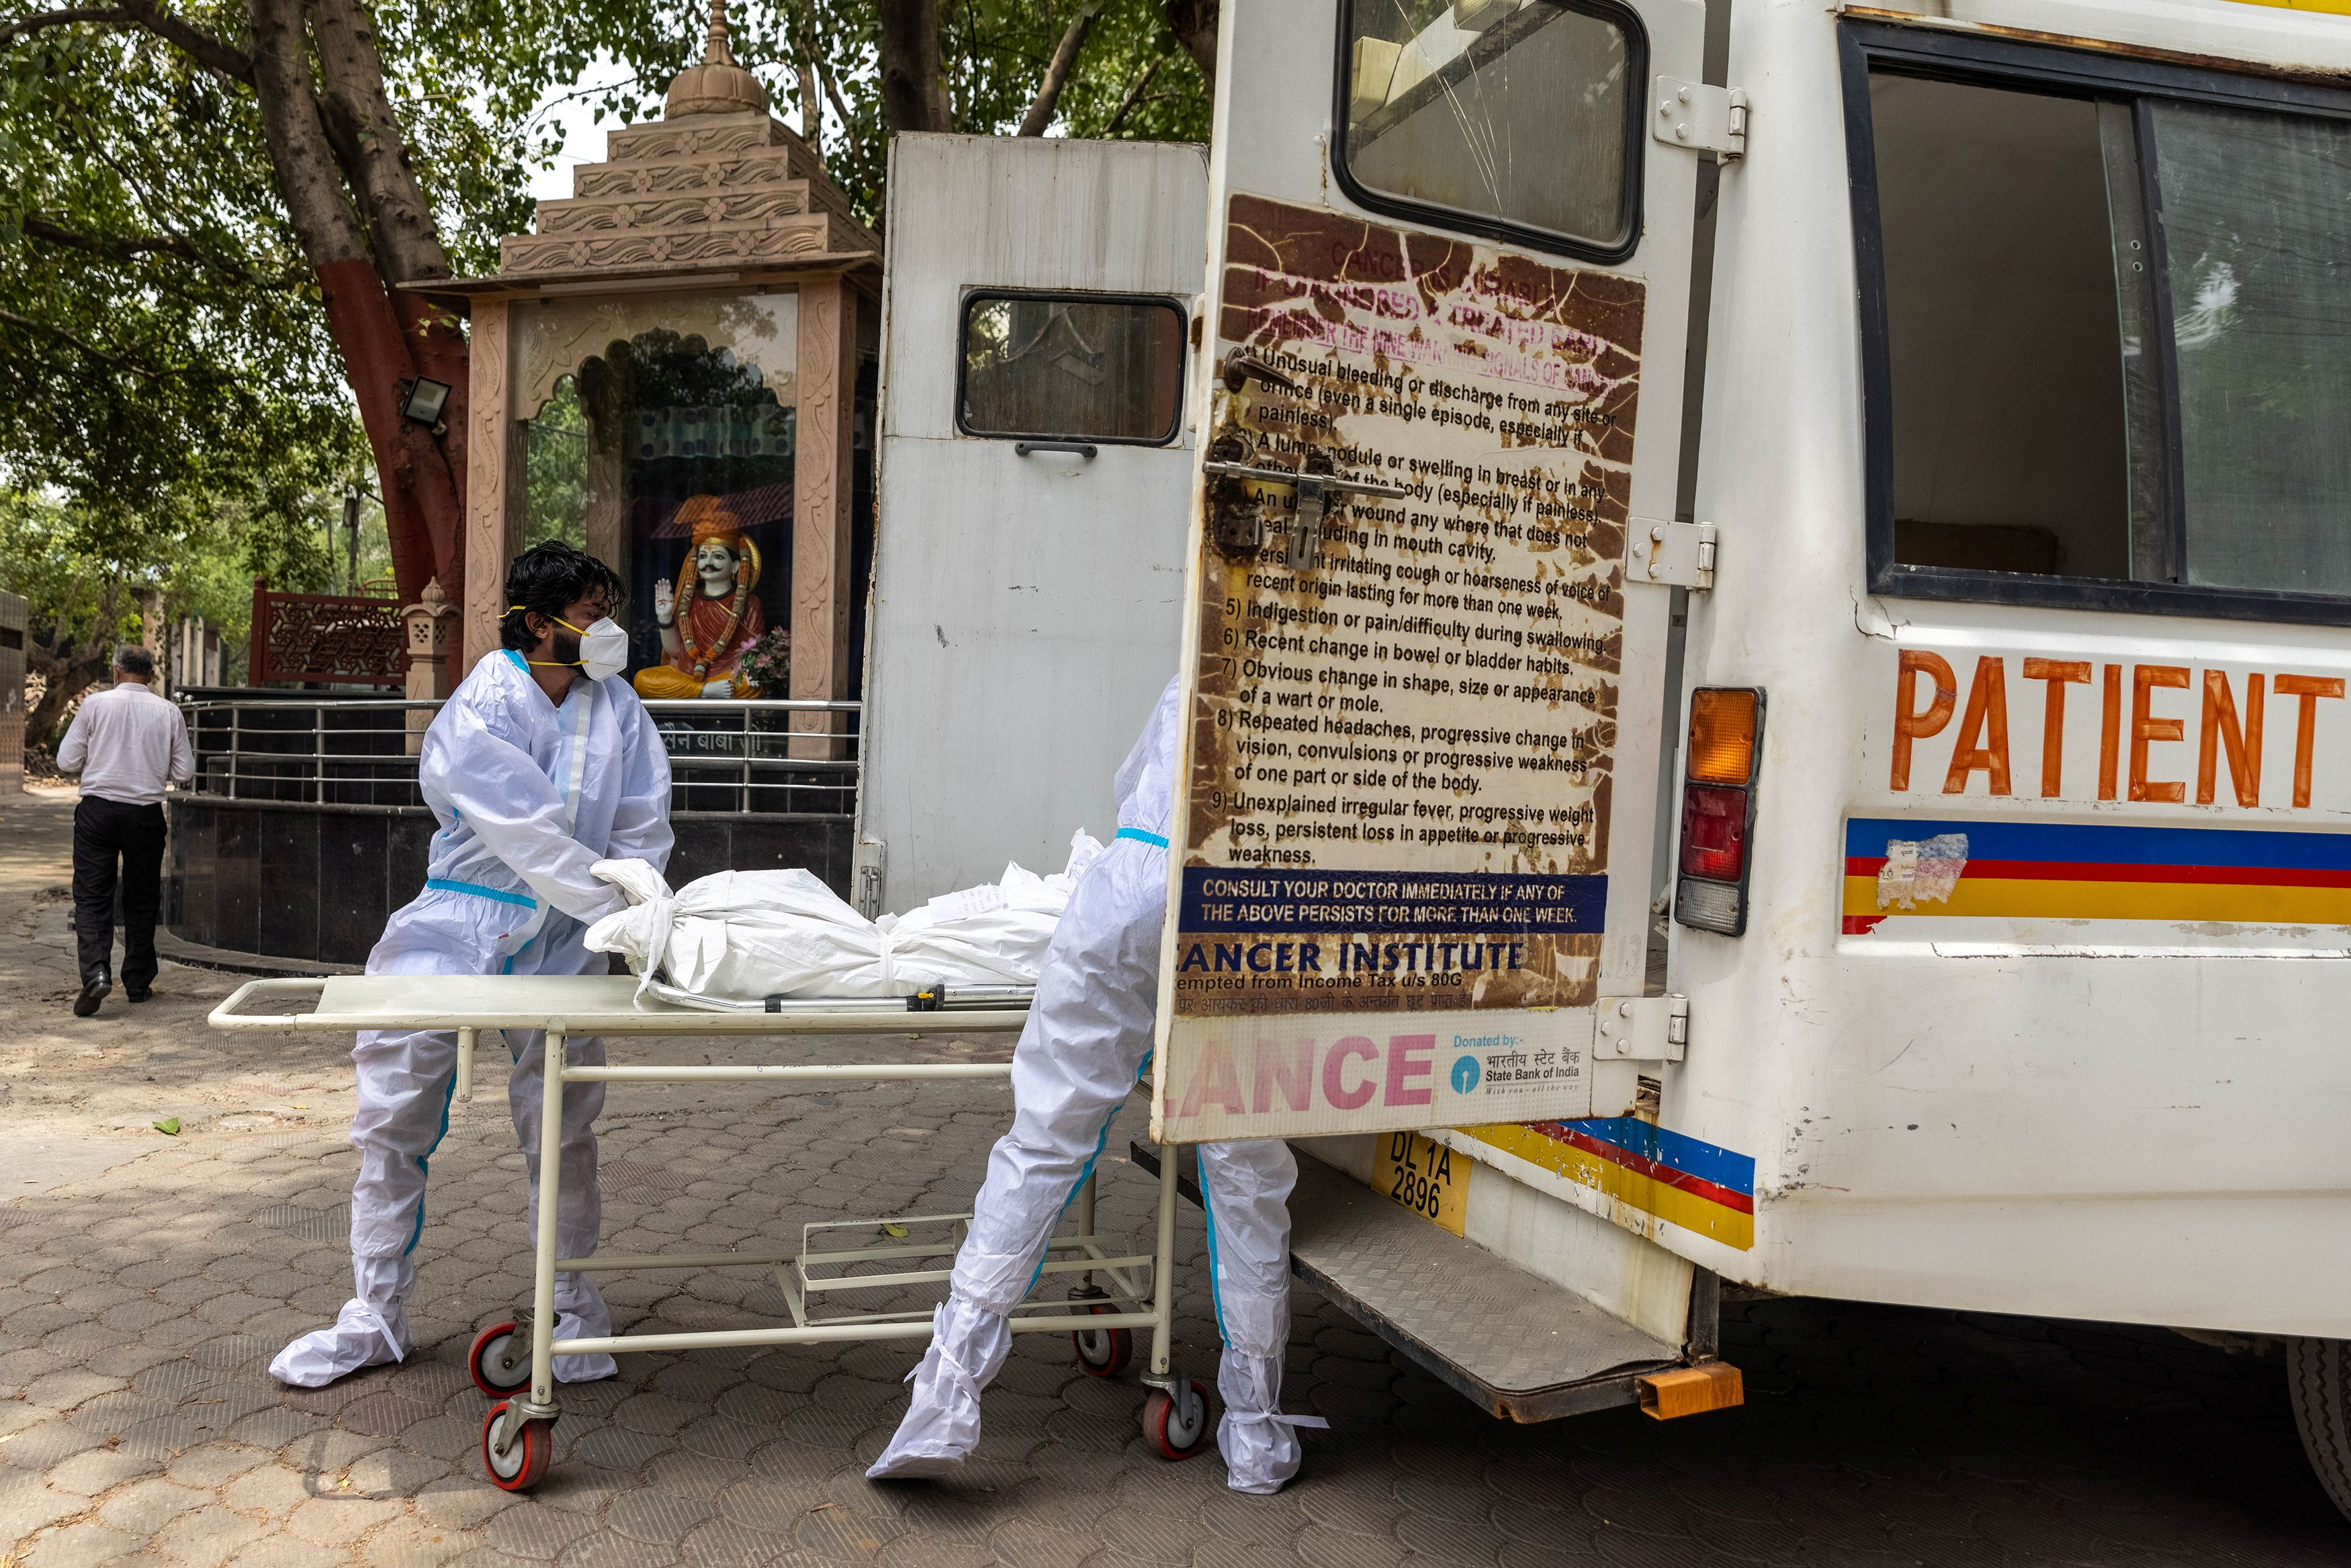 Indian state sharply raises COVID-19 death toll prompting call for wide  review | Reuters